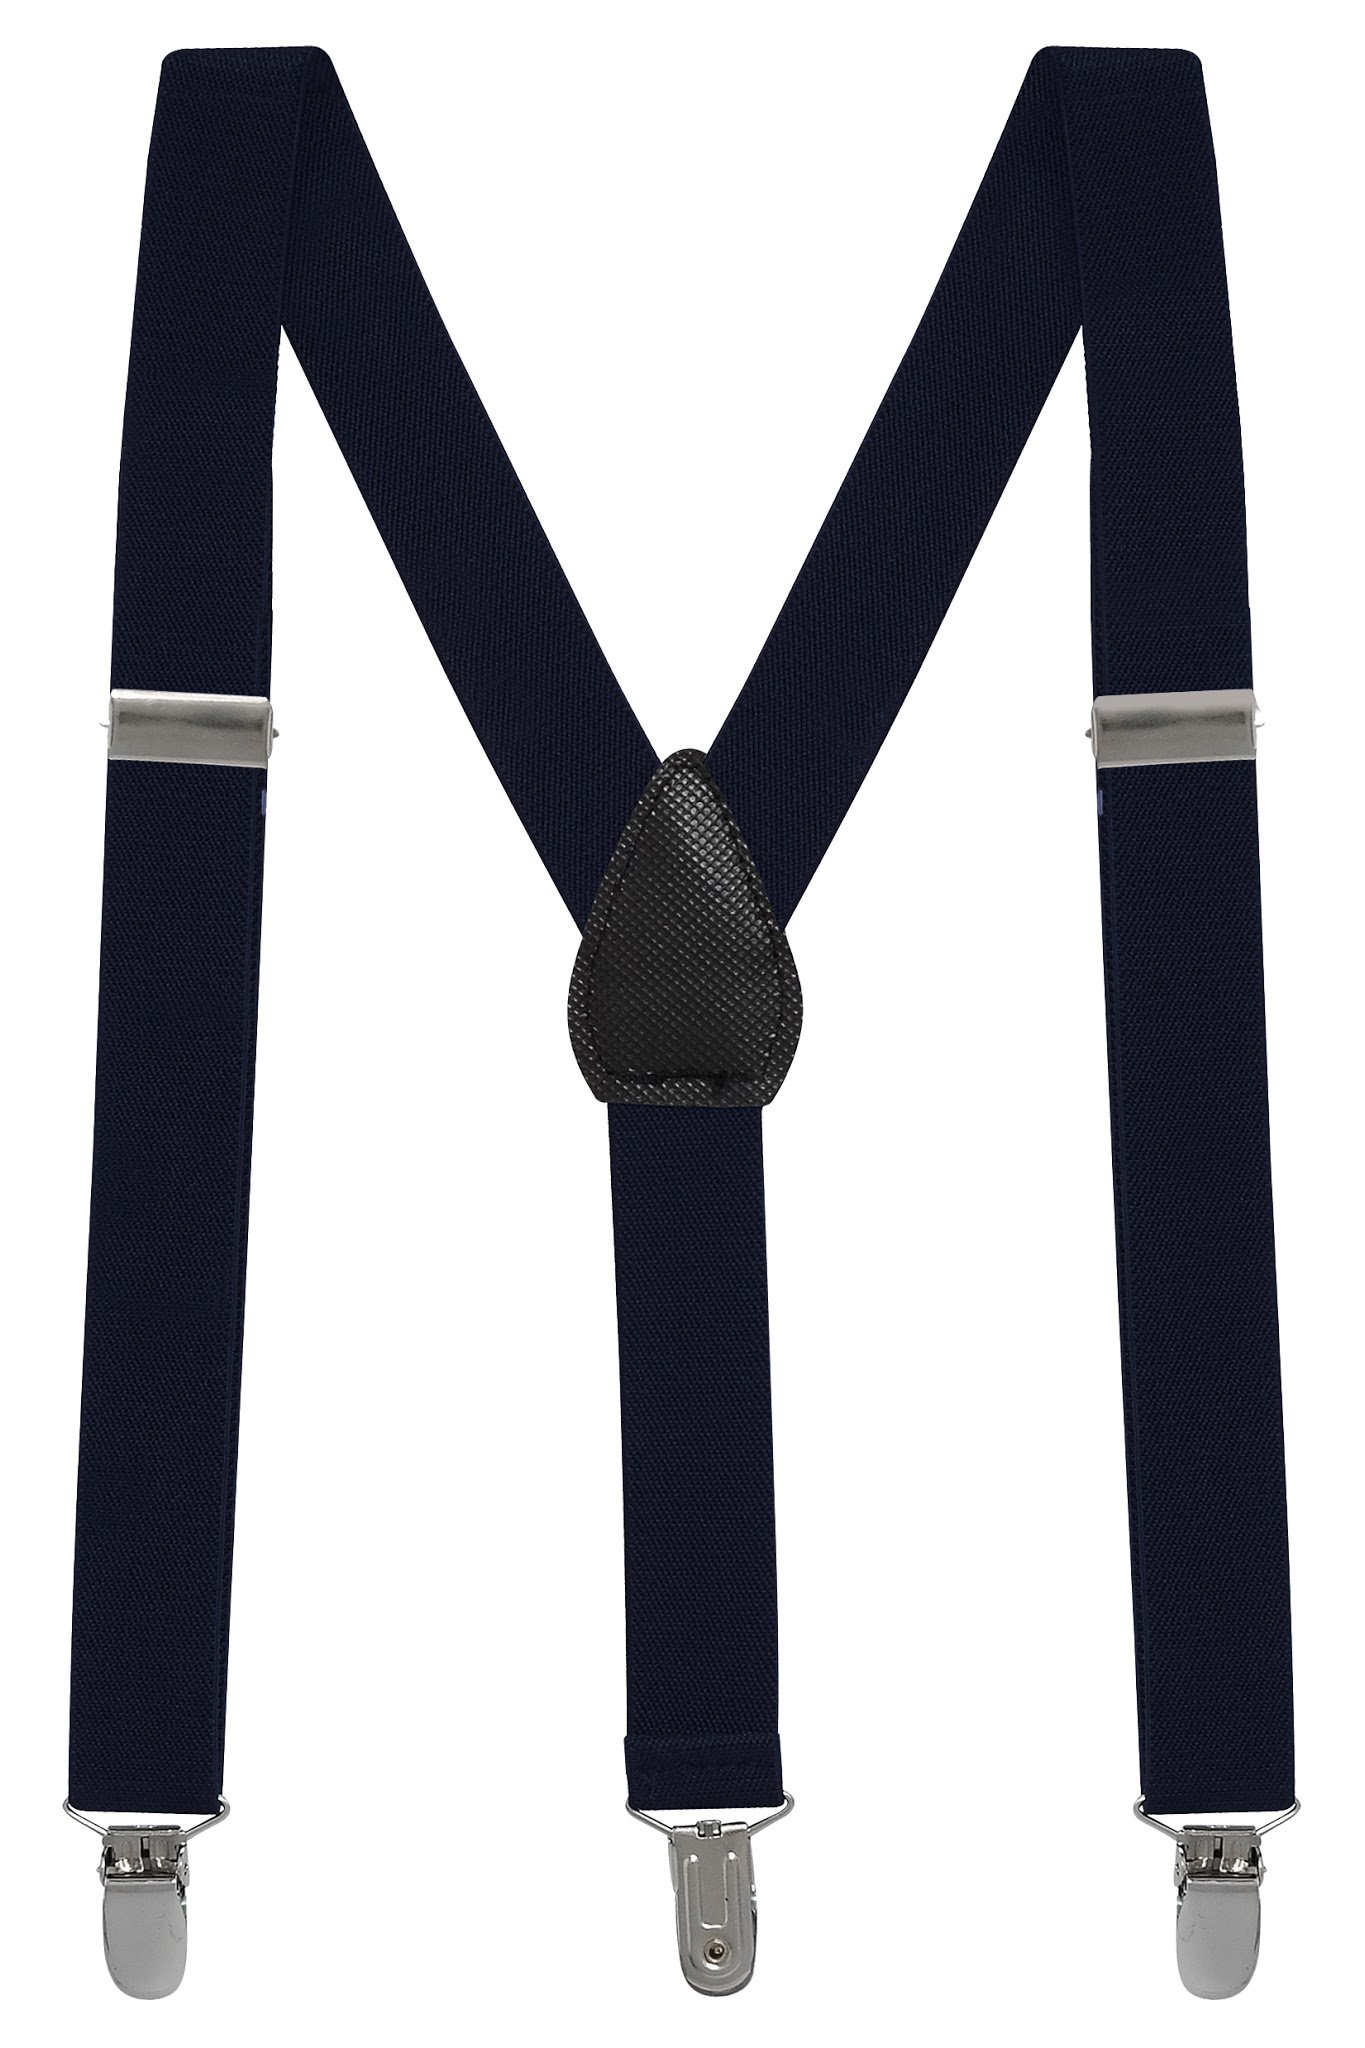 Buyless Fashion Kids And Baby Adjustable Elastic Solid Color 1 inch Suspenders - Navy - Size 30